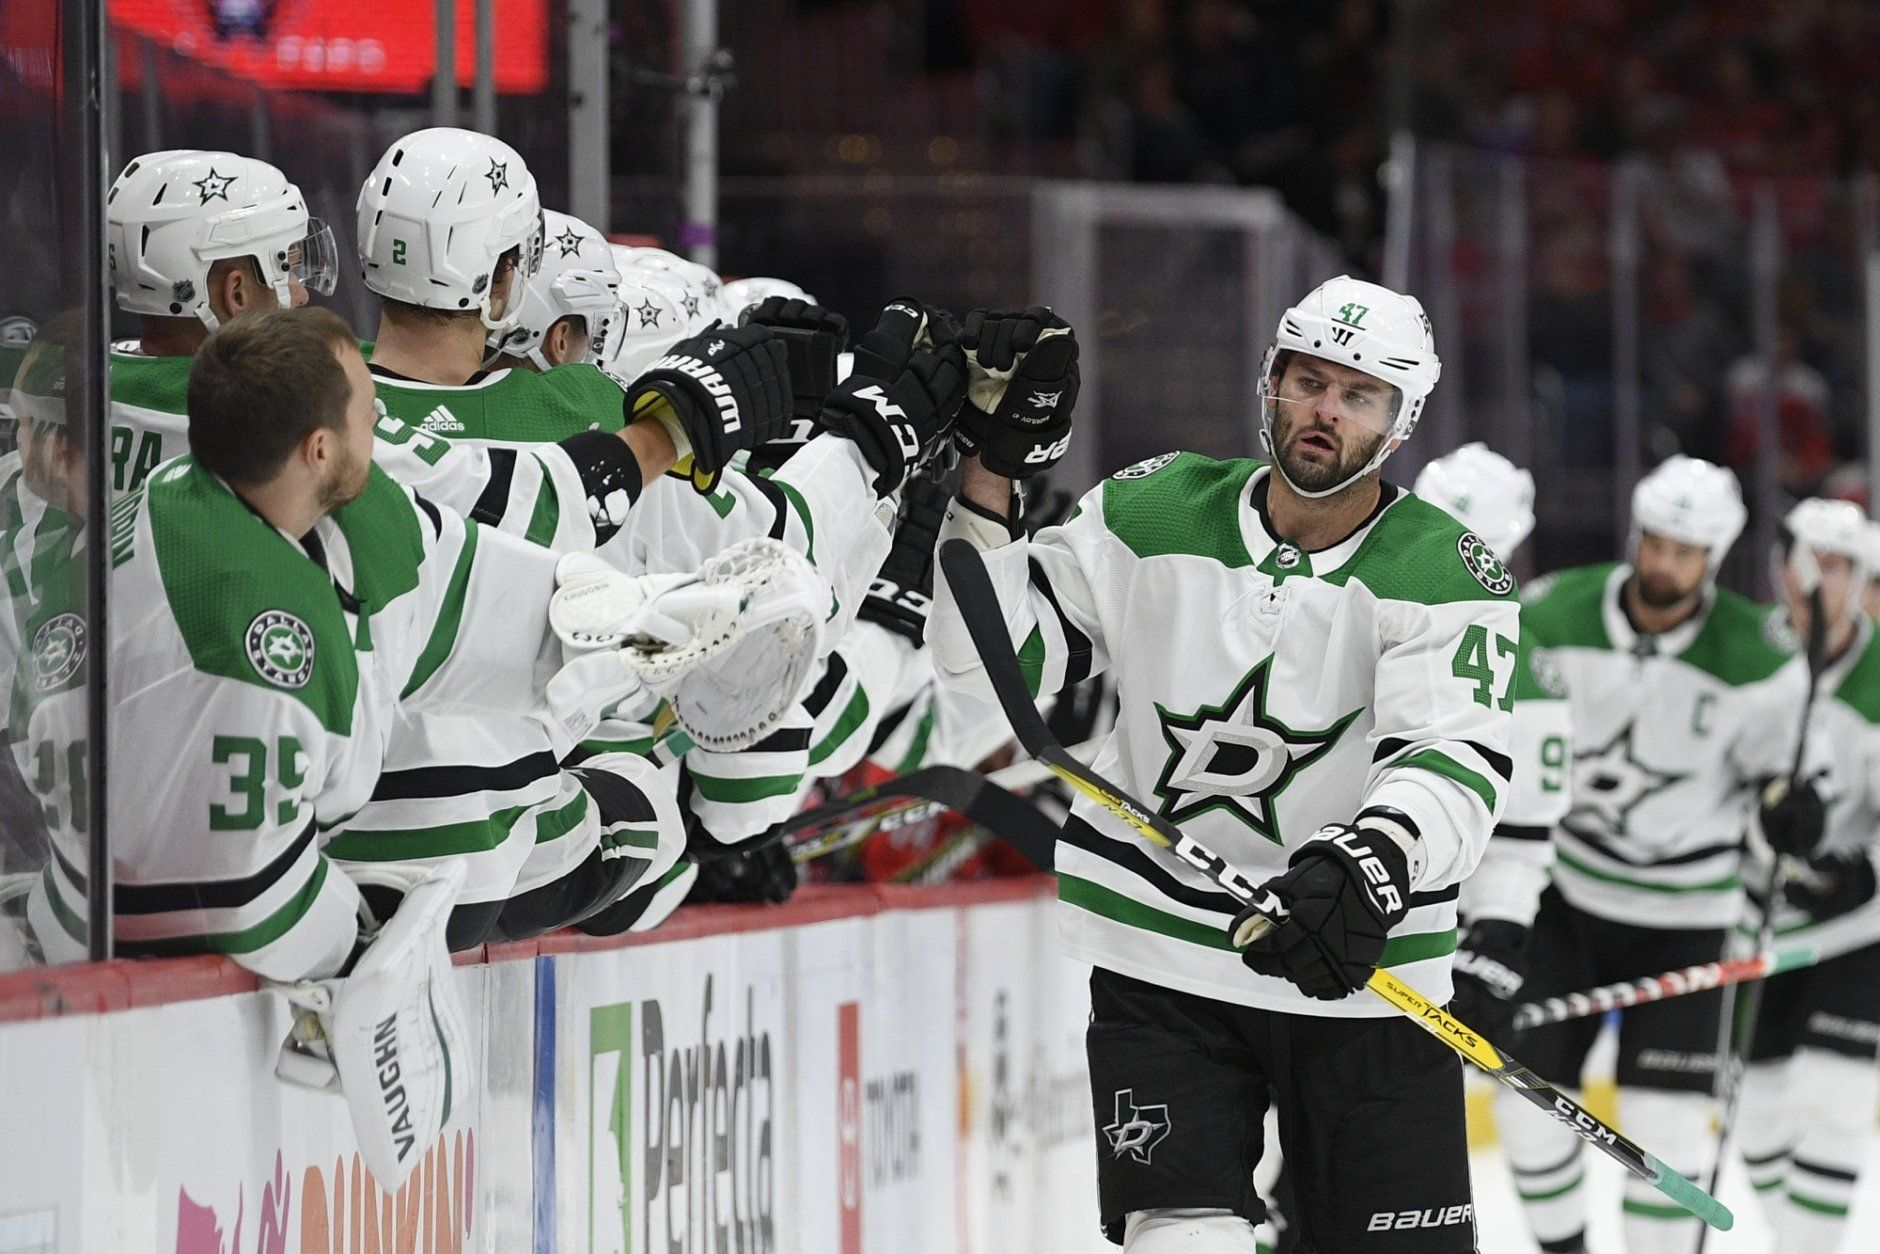 Dallas Stars right wing Alexander Radulov (47), of Russia, celebrates his goal during the third period of the team's NHL hockey game against the Washington Capitals, Tuesday, Oct. 8, 2019, in Washington. The Stars won 4-3 in overtime. (AP Photo/Nick Wass)